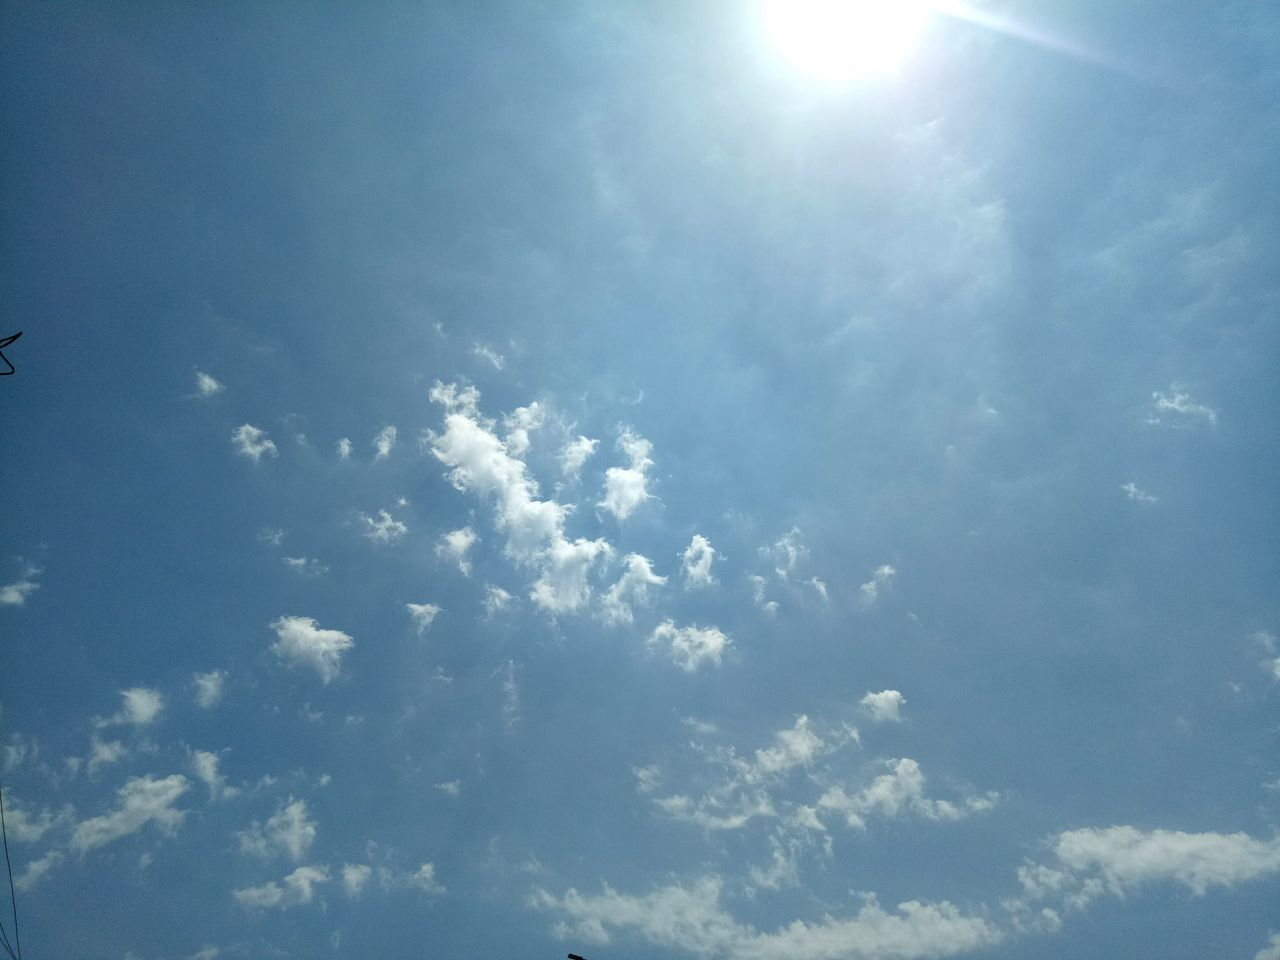 Looking at the sky. Sky Blue Nature No People Outdoors Day Cloud - Sky Sun Sunlight Shine Tranquility